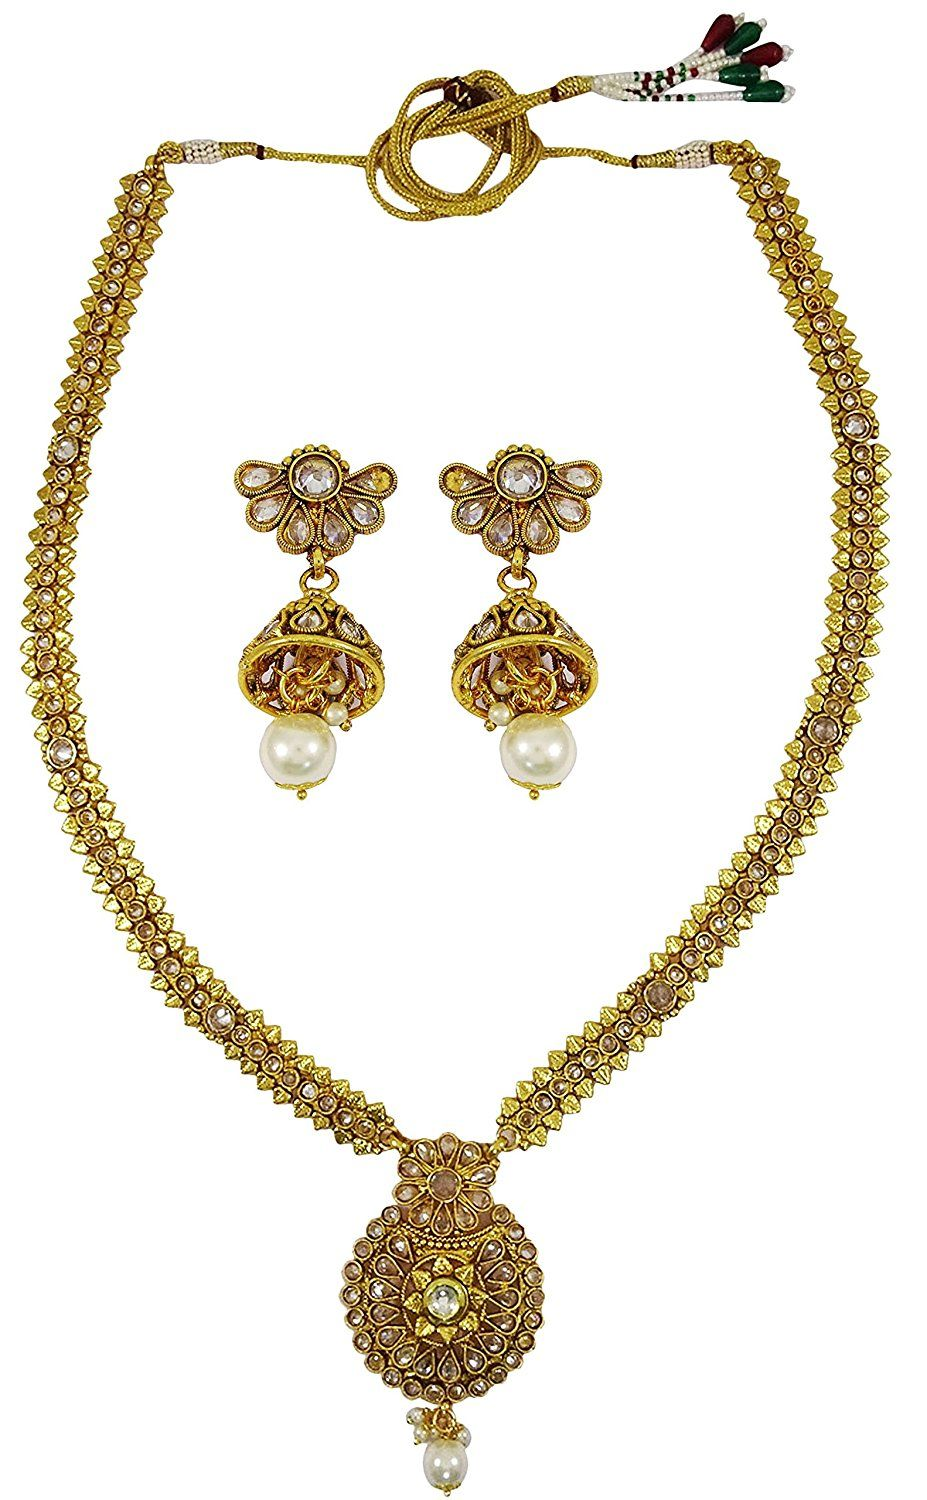 Muchmore Bollywood Fashion Glamorous Crystal Polki Indian Necklace SetTraditional Jewellery AZGx1aACTJ